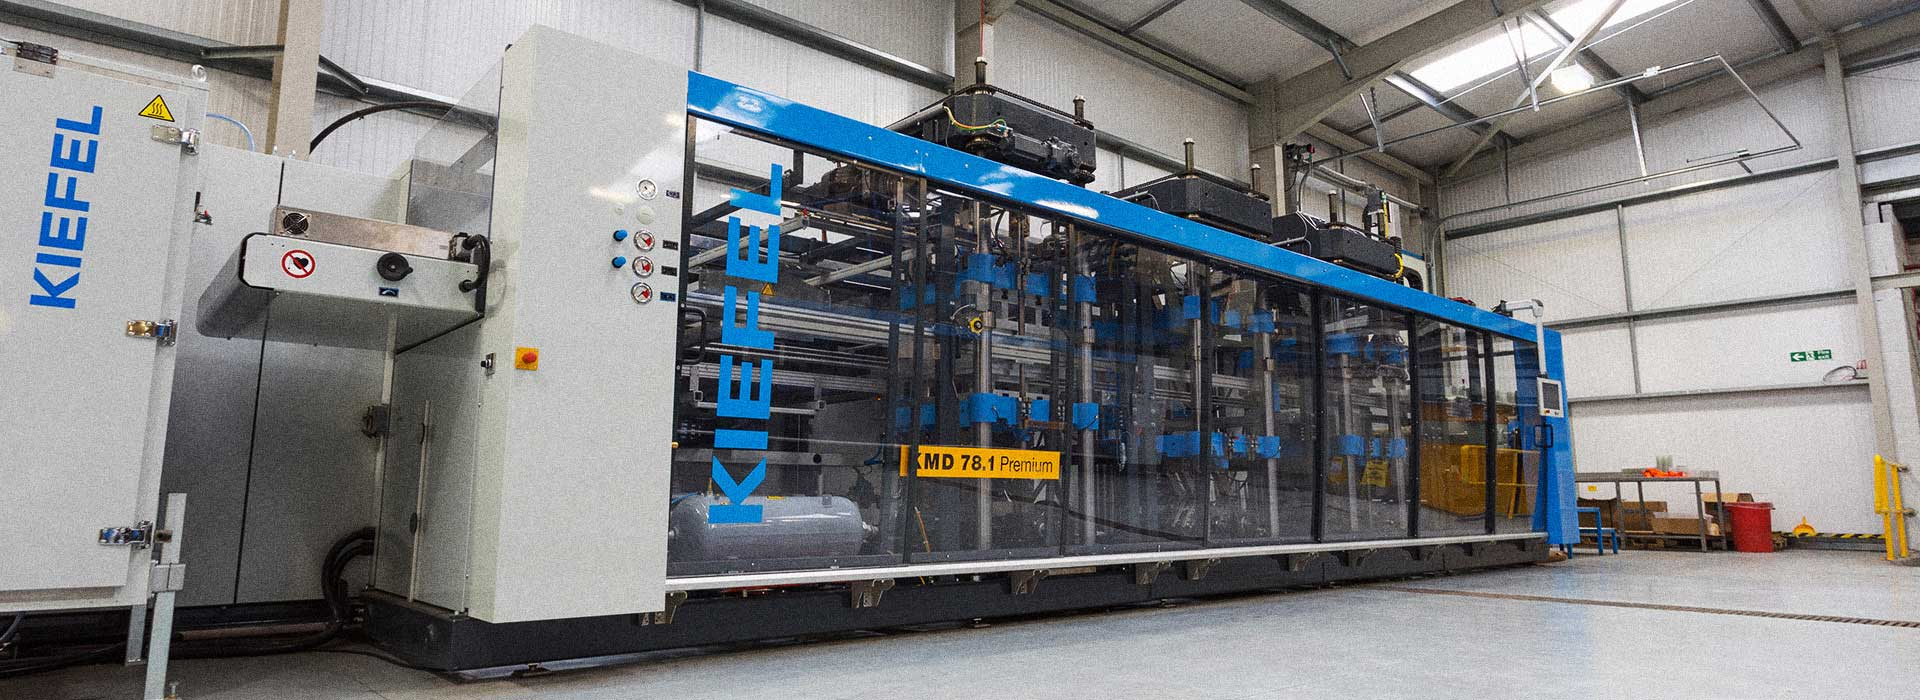 Kiefel thermoforming machines